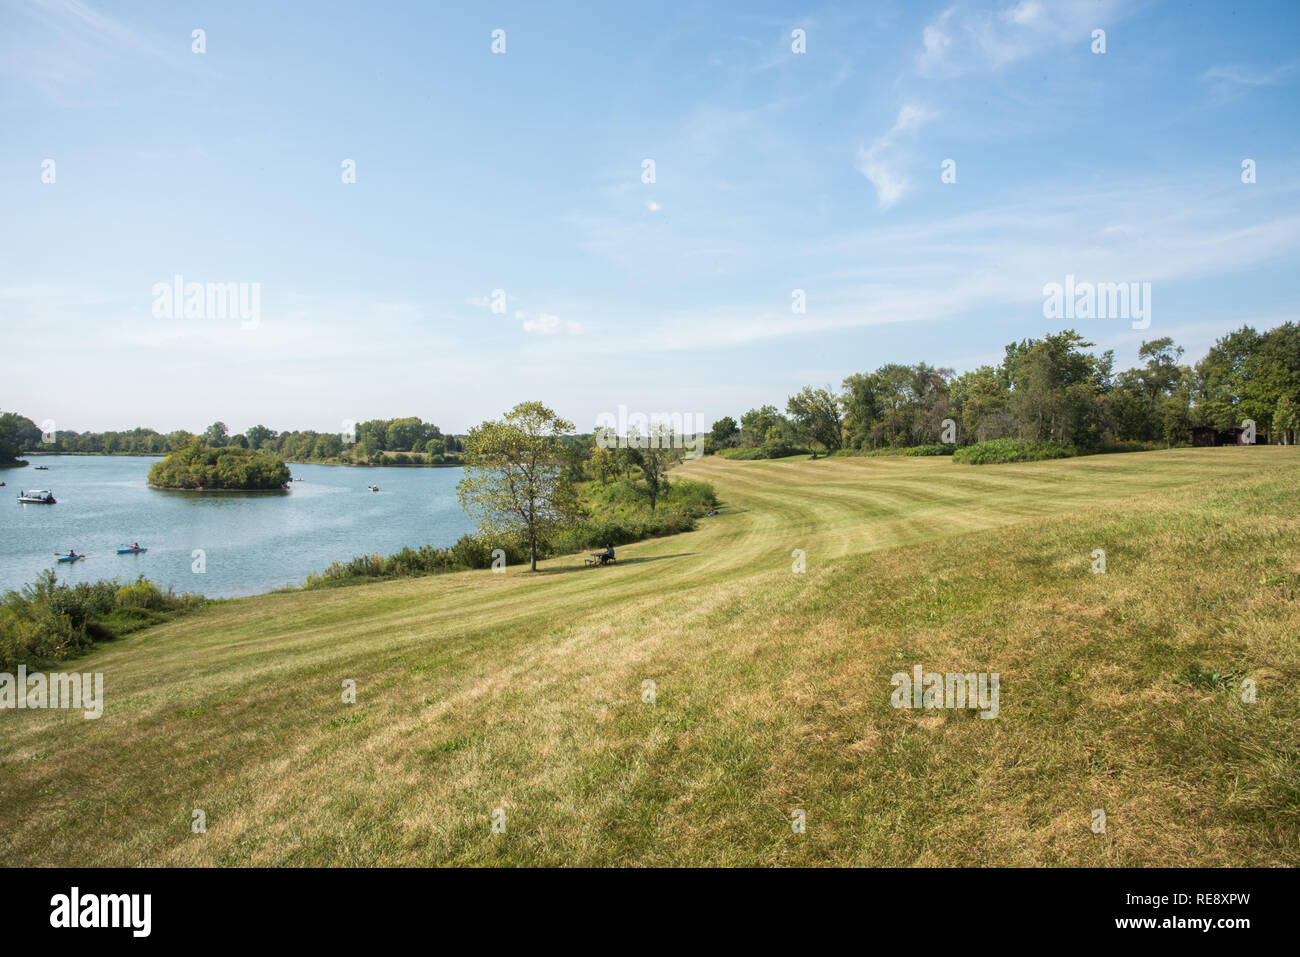 Naperville, Illinois, United States-September 4,2017:  Grass area, picnic table and boats at McDowell Grove Forest Preserve in Naperville, Illinois - Stock Image